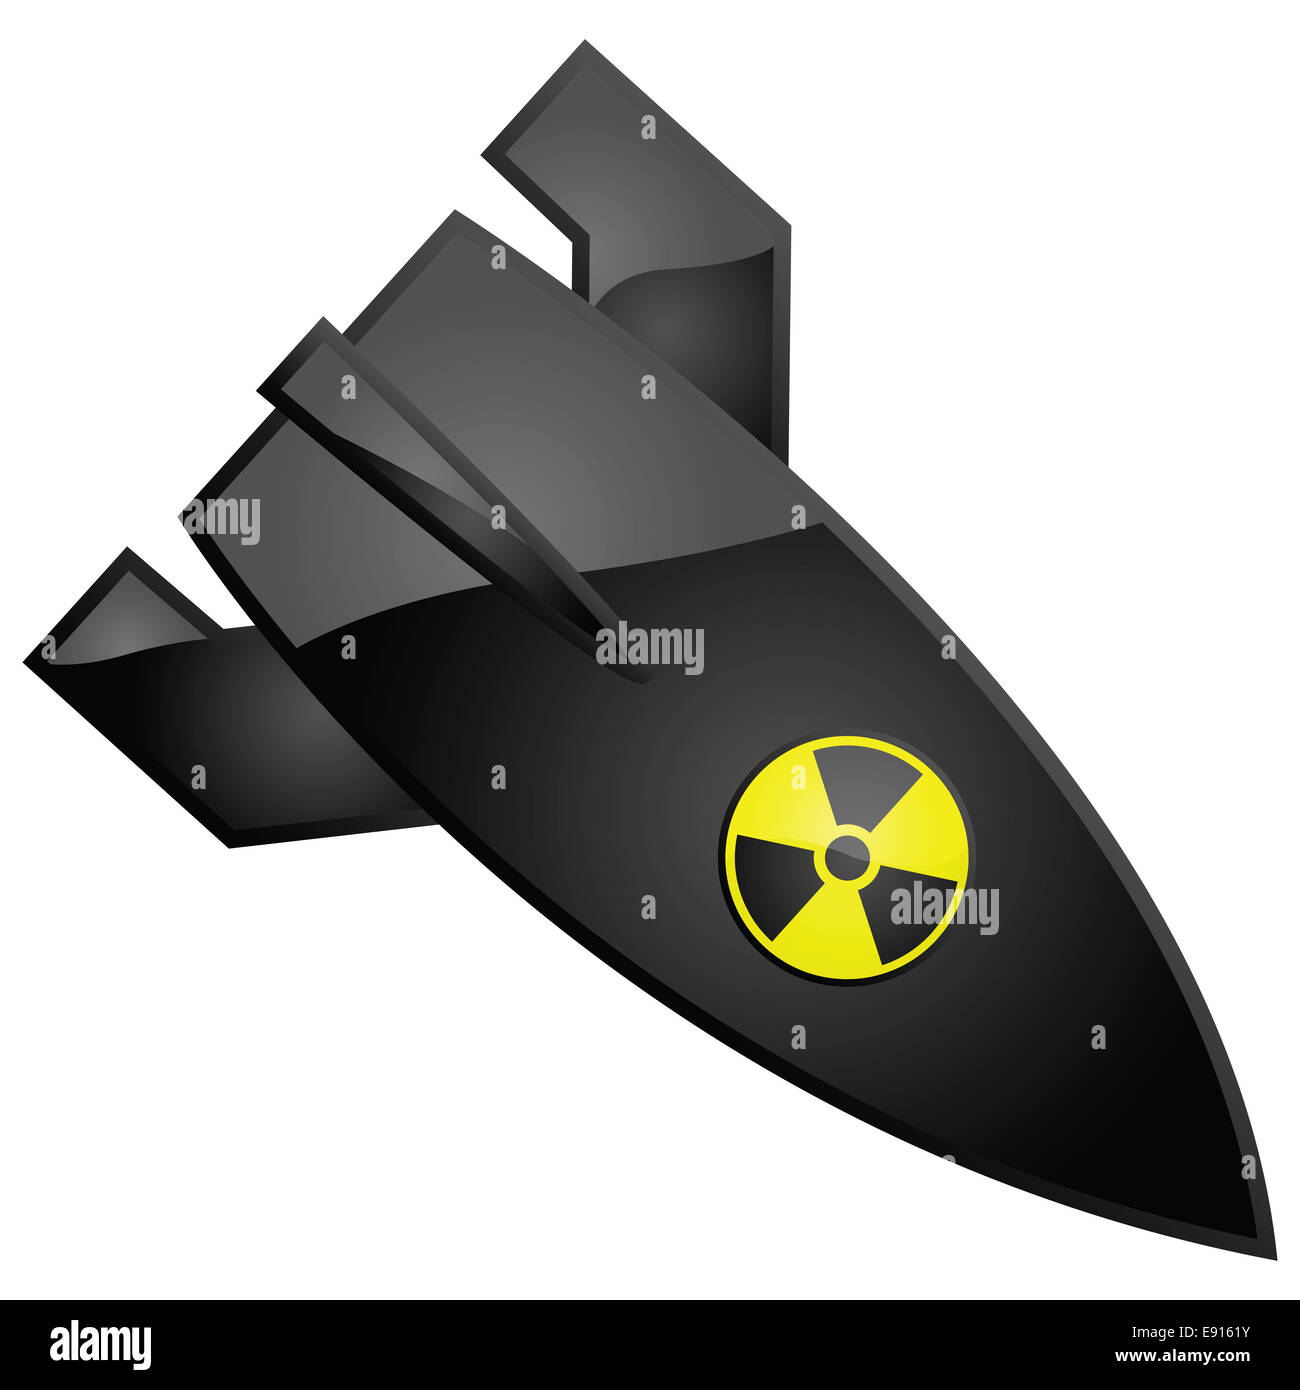 Nuclear bomb - Stock Image